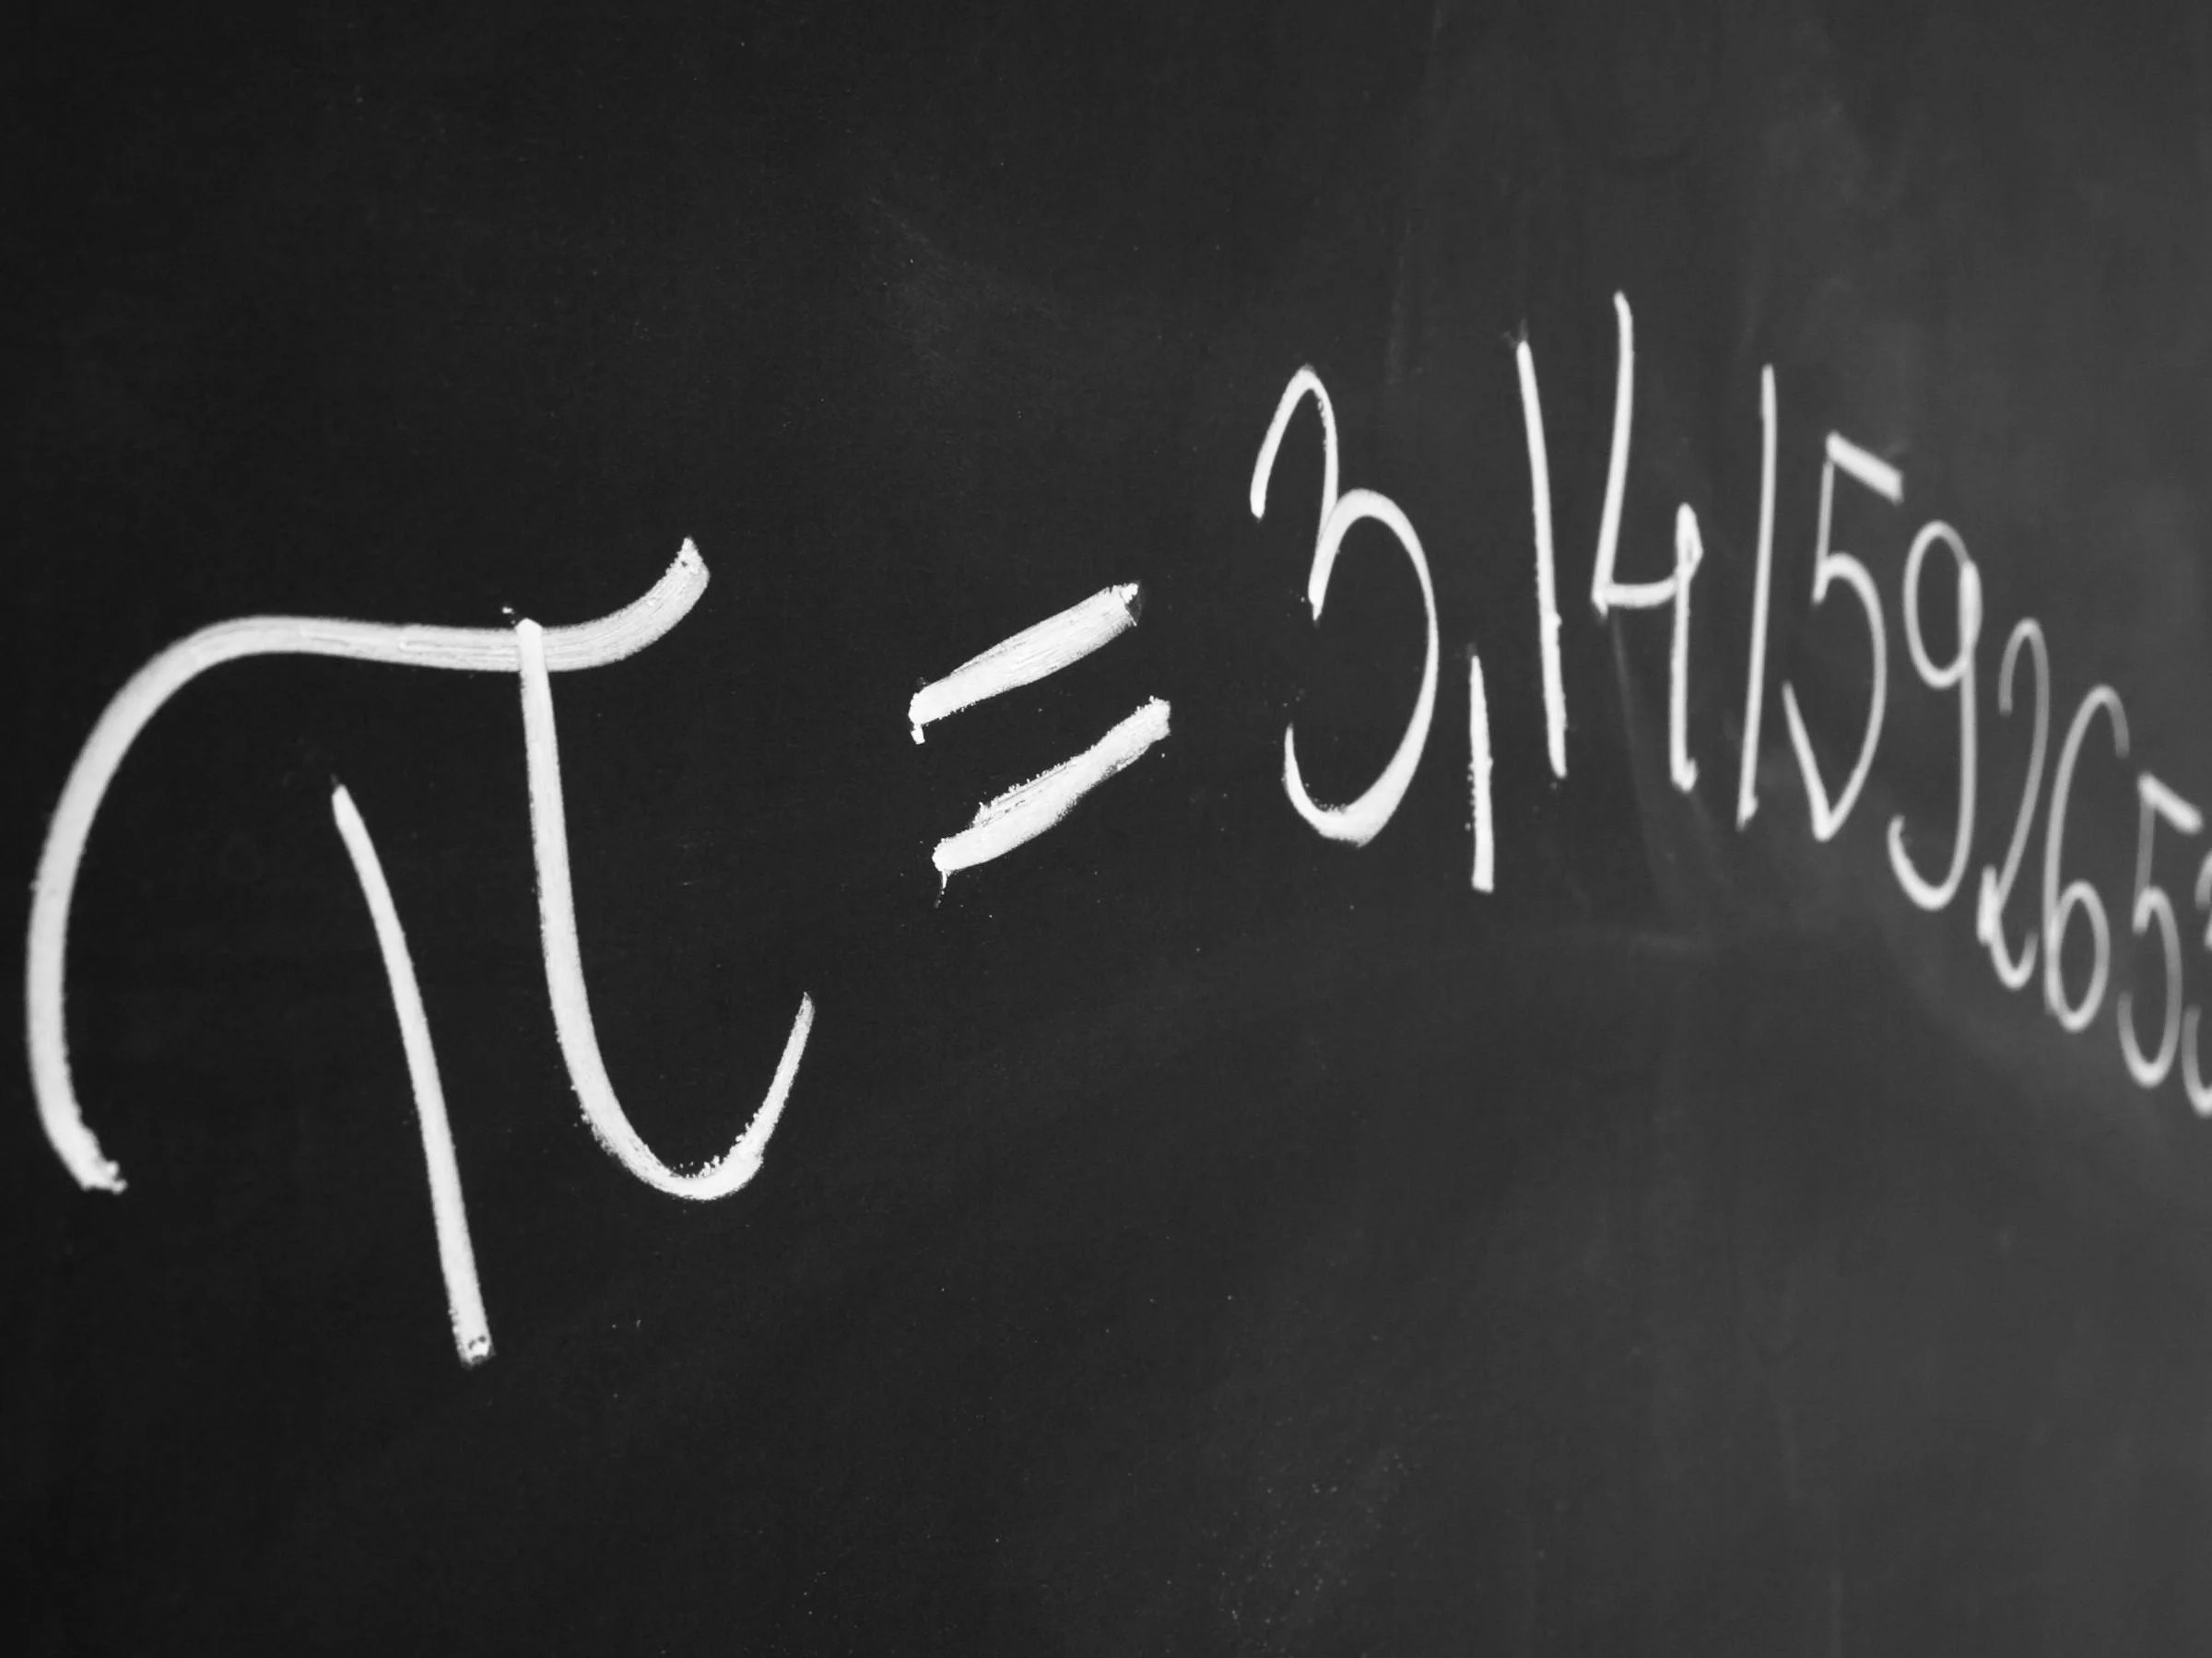 Employee Breaks World Record For Calculating Pi To 3 14 Trillion Digits